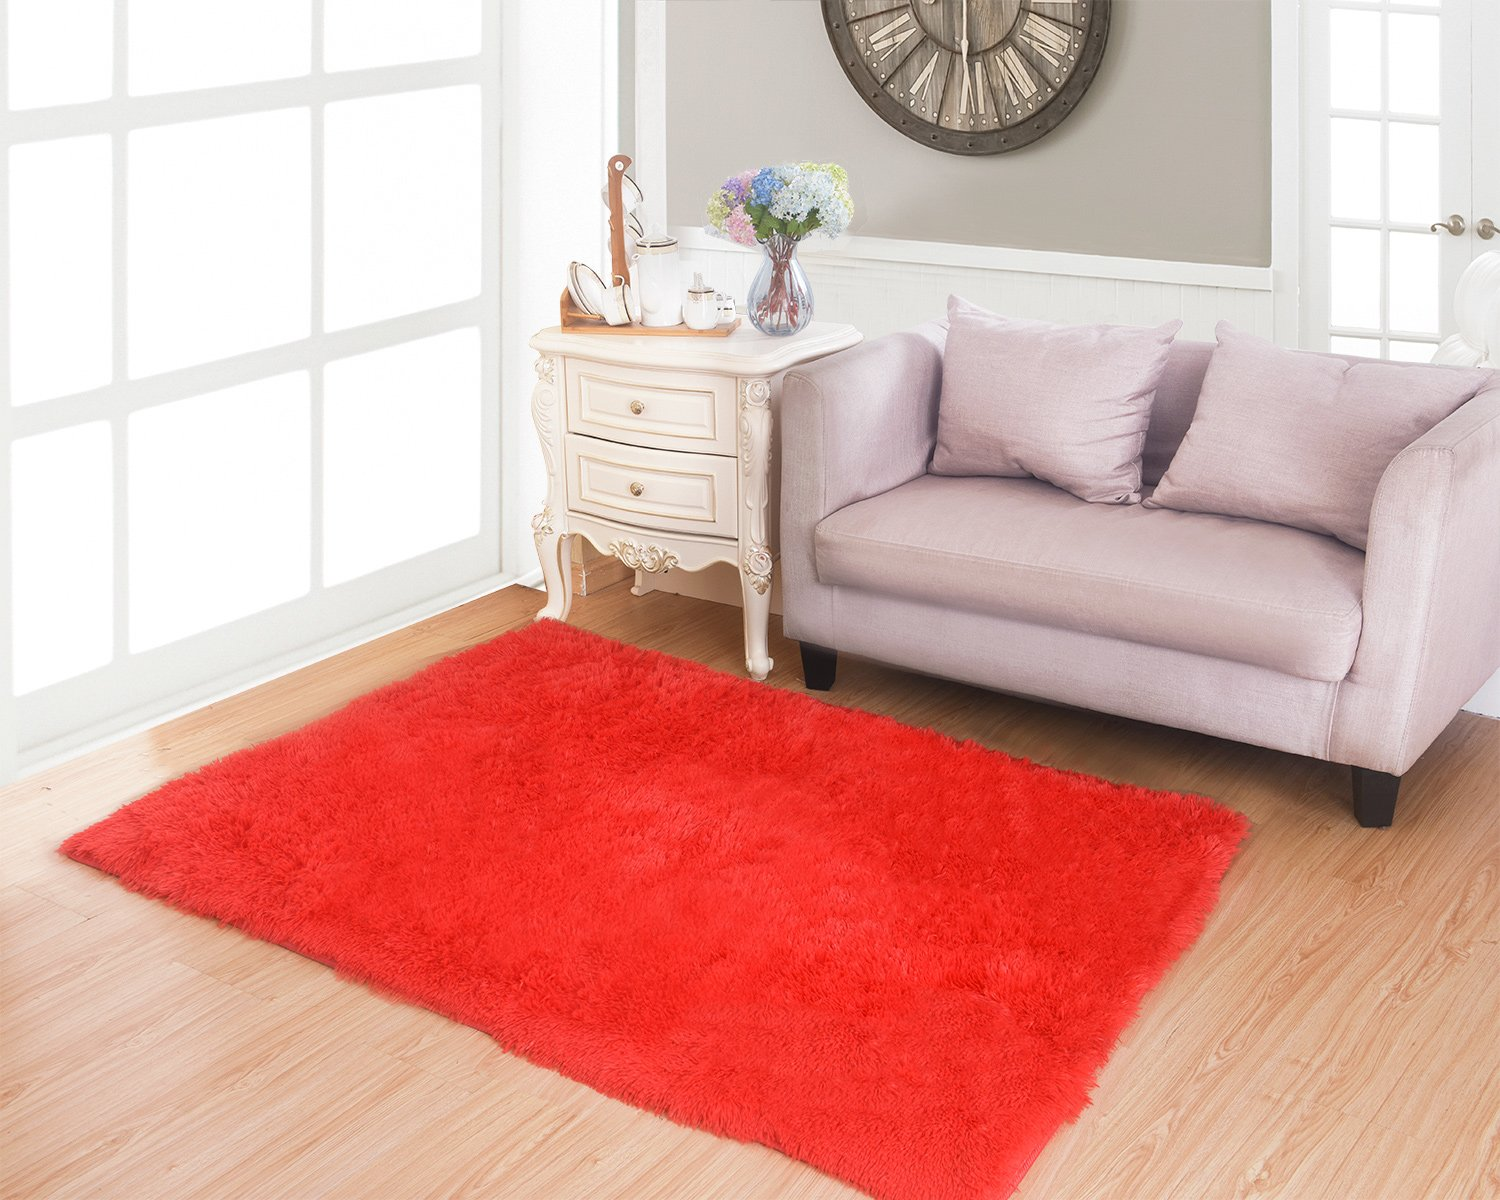 Amazon.com: Living Room Bedroom Rugs, MBIGM Ultra Soft Modern Area Rugs  Thick Shaggy Play Nursery Rug With Non Slip Carpet Pad For Living Room  Bedroom 4 ... Part 61